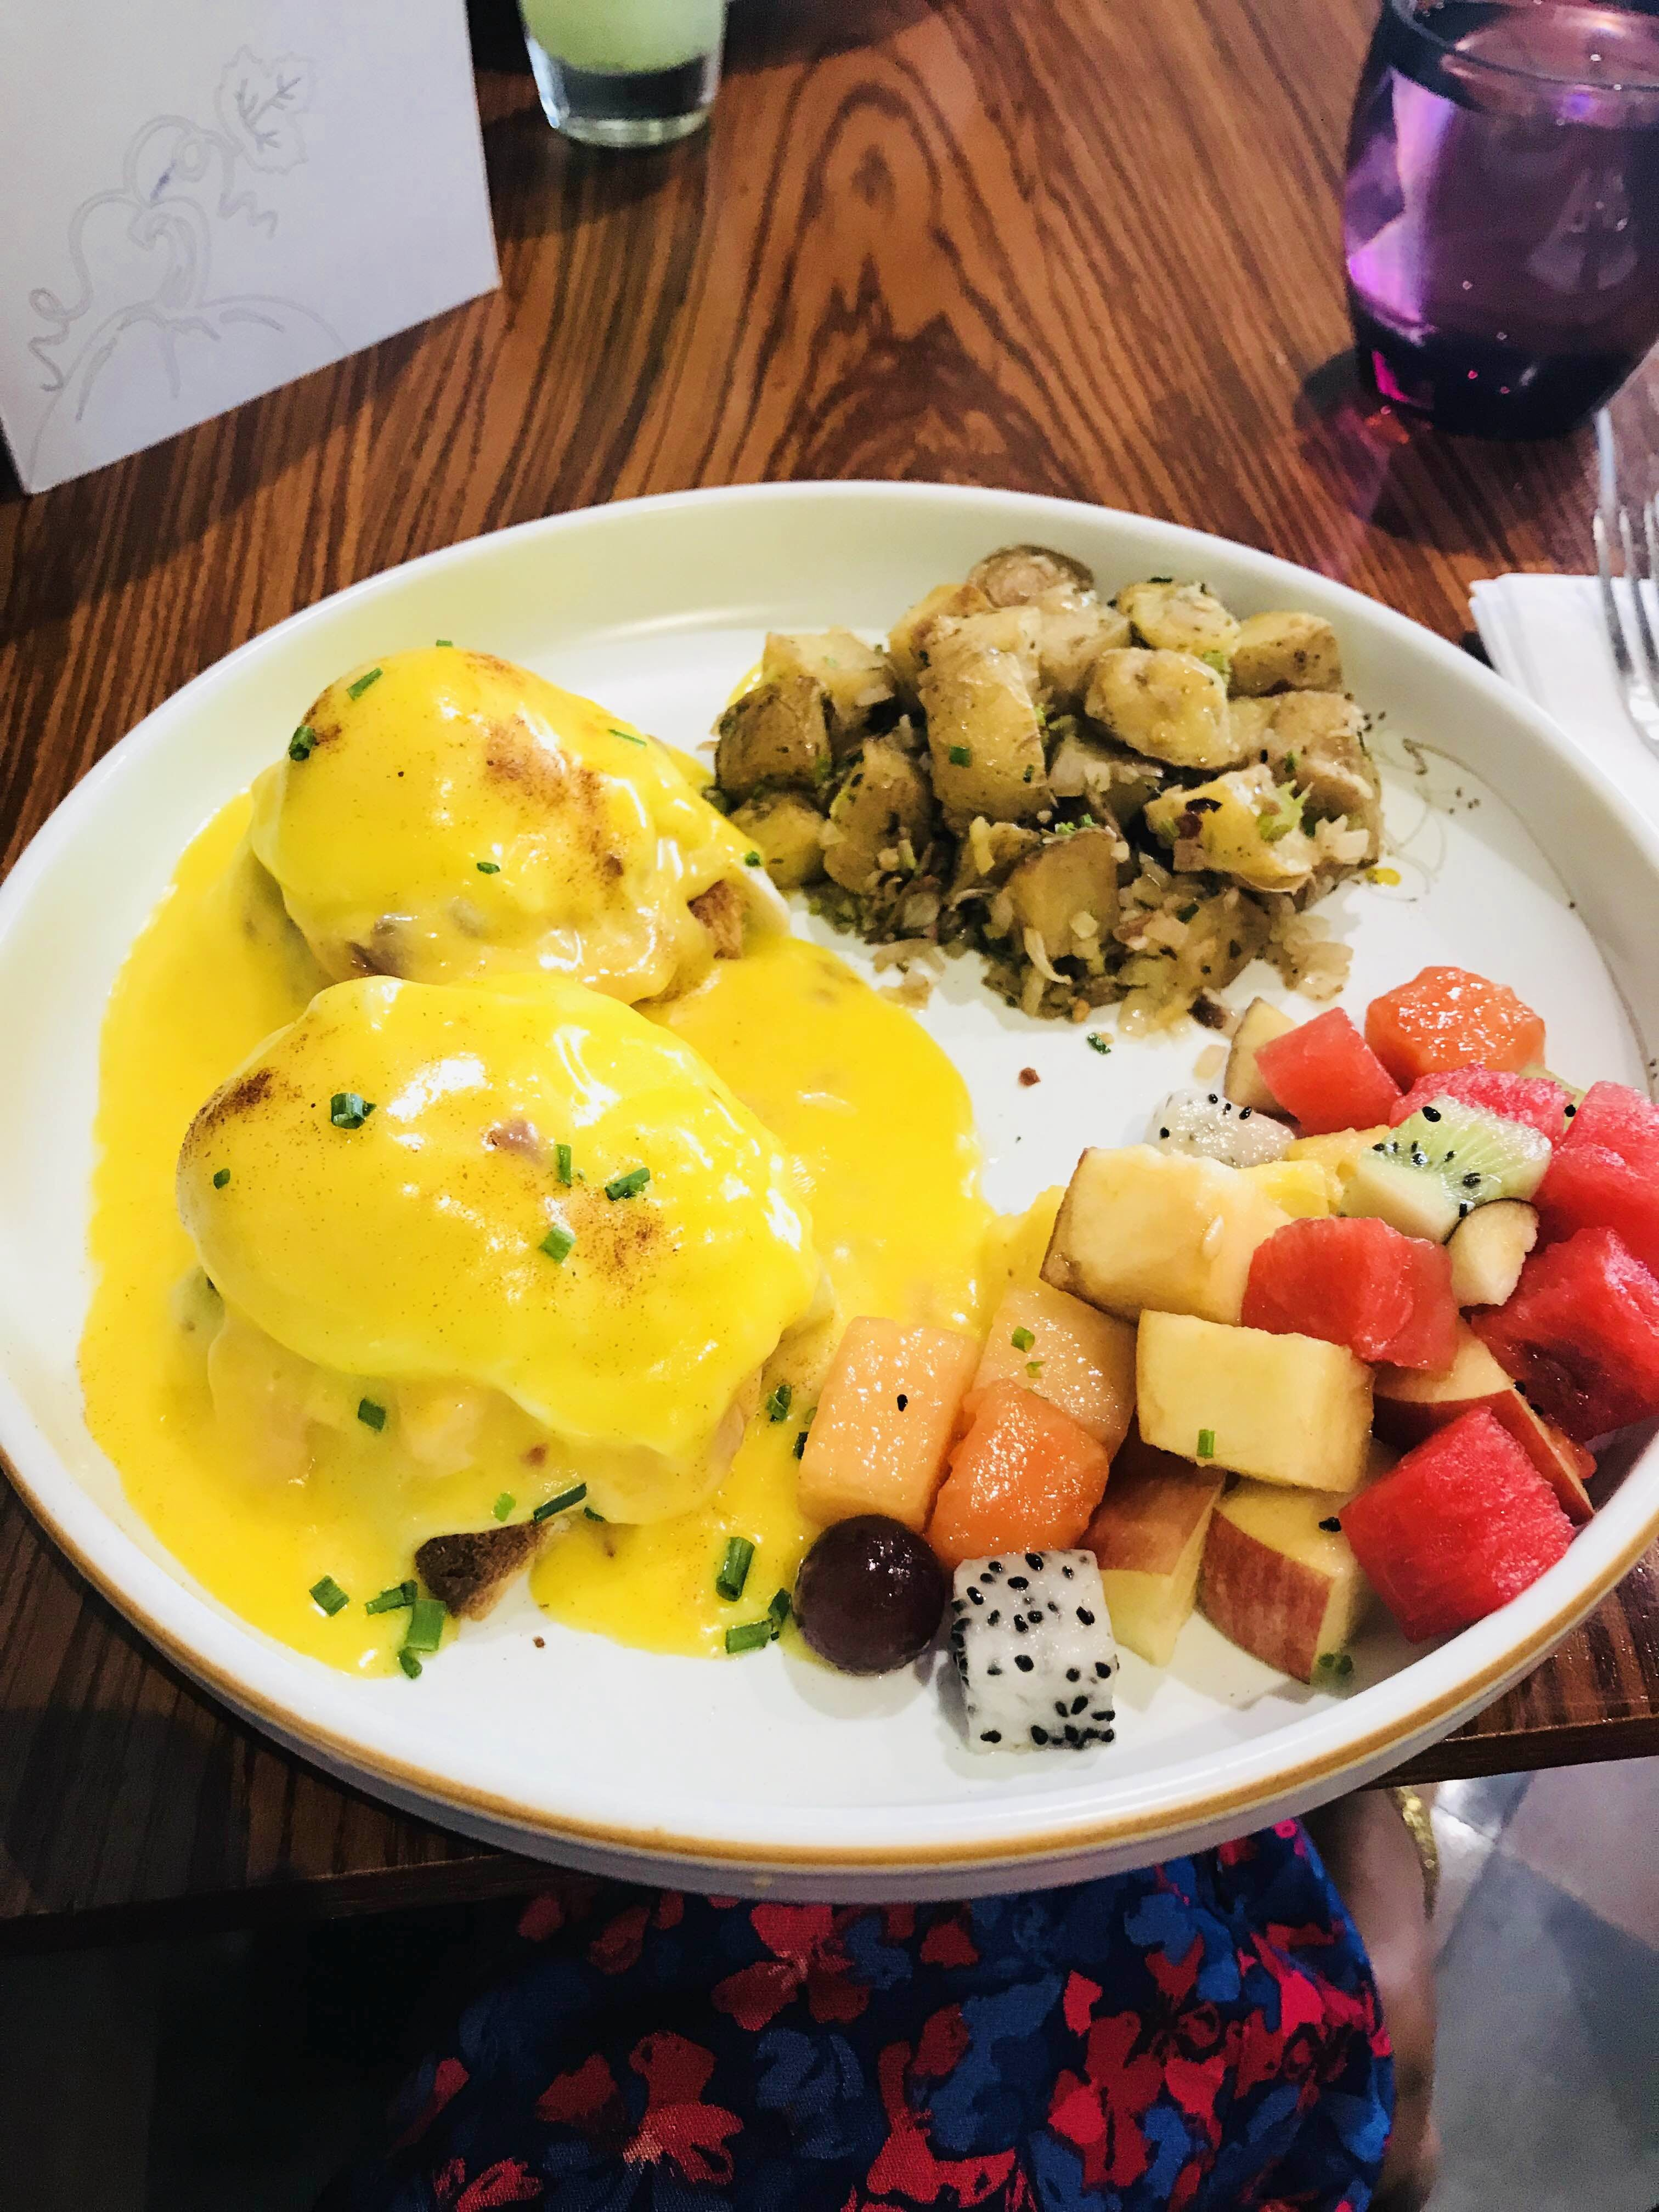 Dish,Cuisine,Food,Meal,Ingredient,Brunch,Breakfast,Produce,Eggs benedict,Lunch